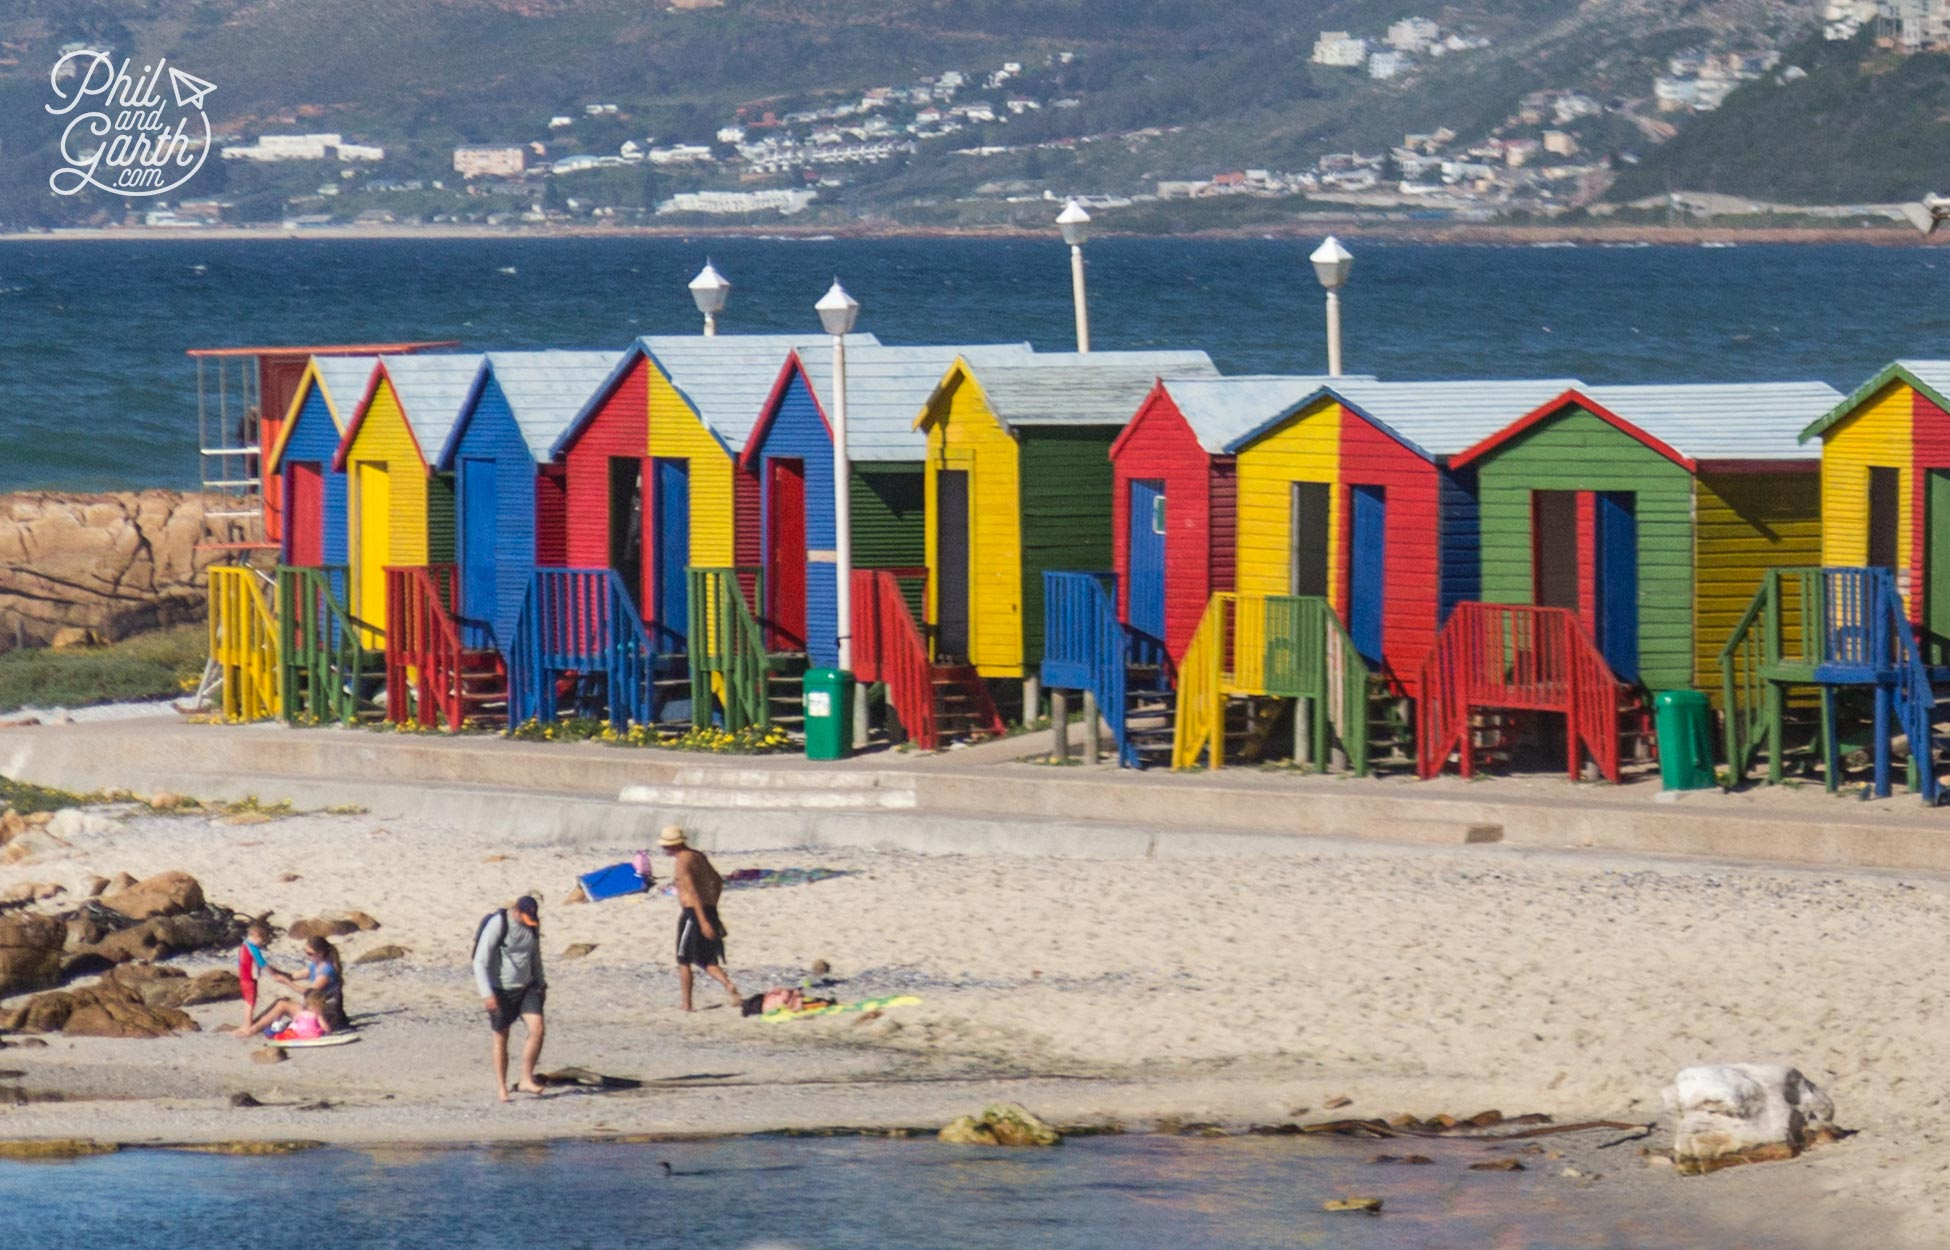 Just some of the colourful Victorian beach huts at Muizenberg Beach